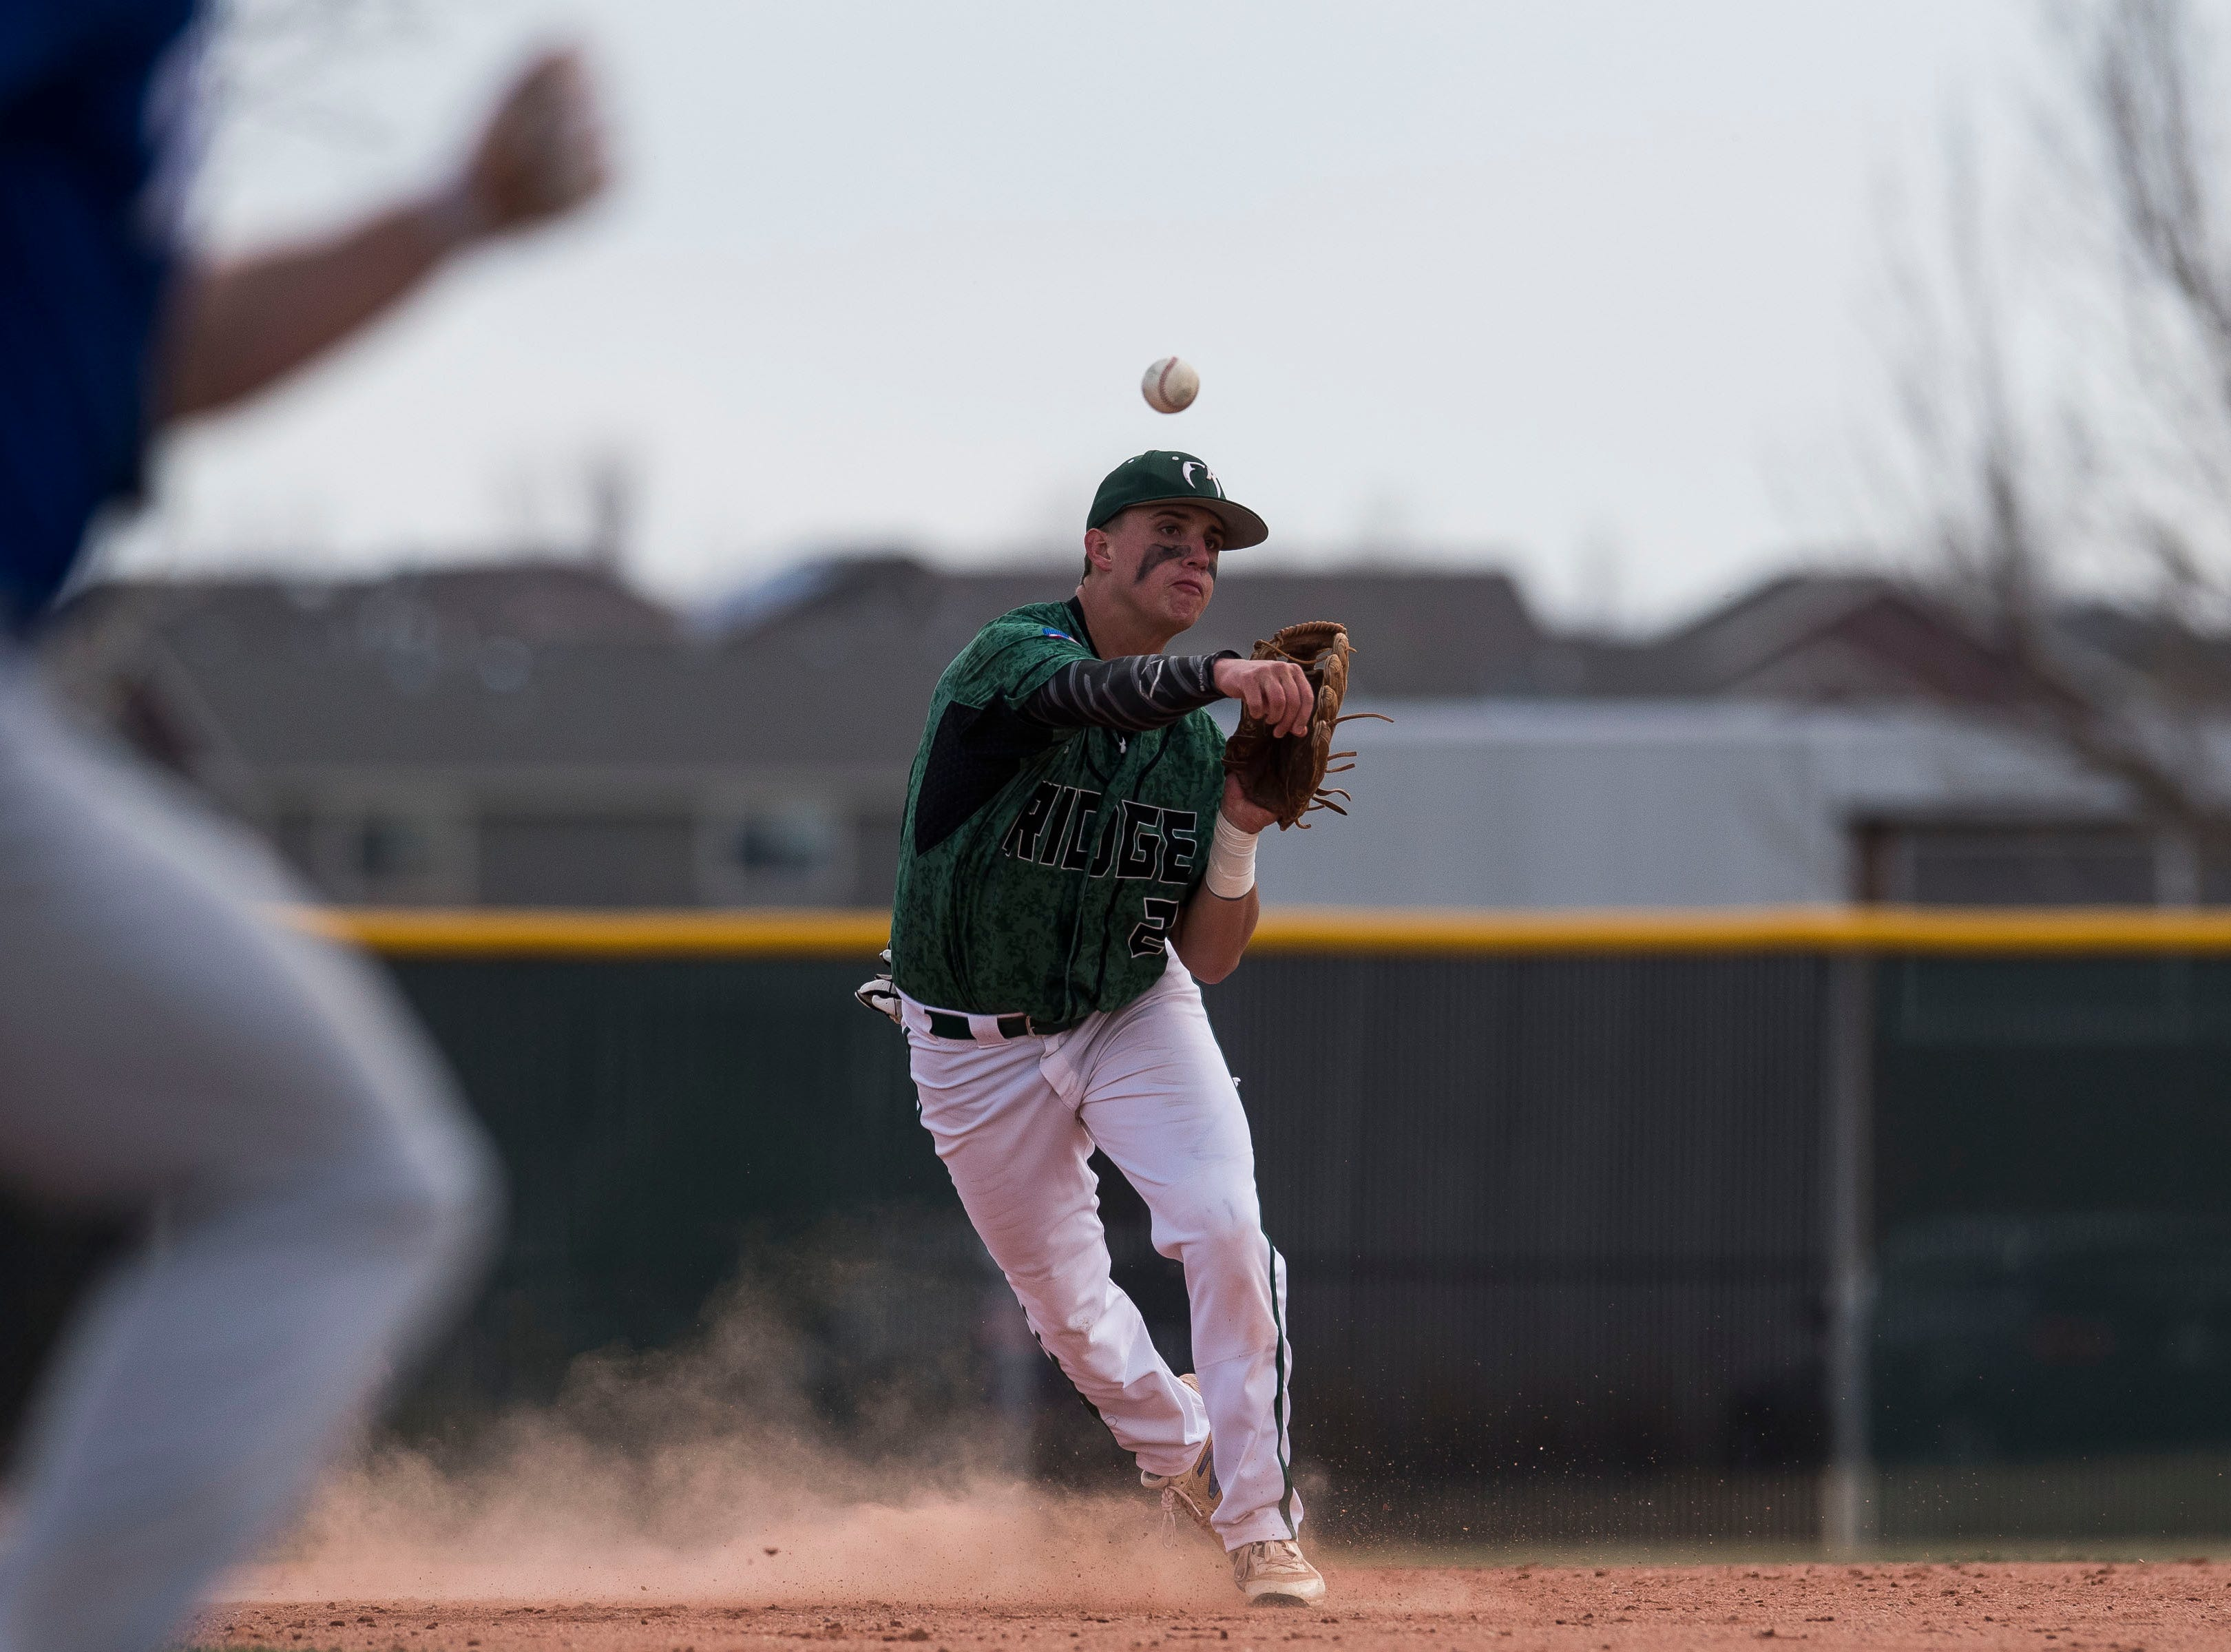 Fossil Ridge High School shortstop Talen Townsend (2) throws out Poudre High School runner Tate Satterfield (4) at first base on Wednesday, April 3, 2019, at Fossil Ridge High School in Fort Collins, Colo.